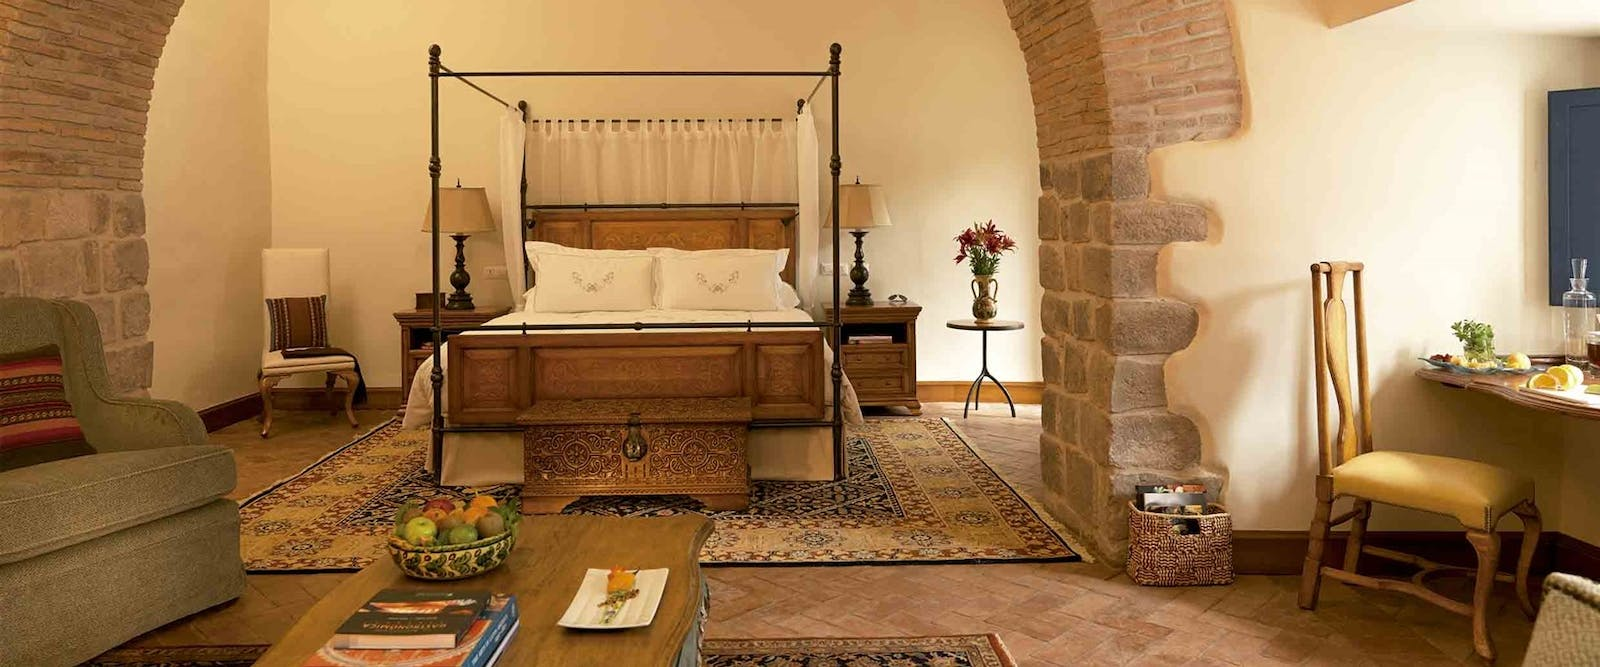 Beautiful bedroom at Palacio Nazarenas, A Belmond Hotel, Cusco